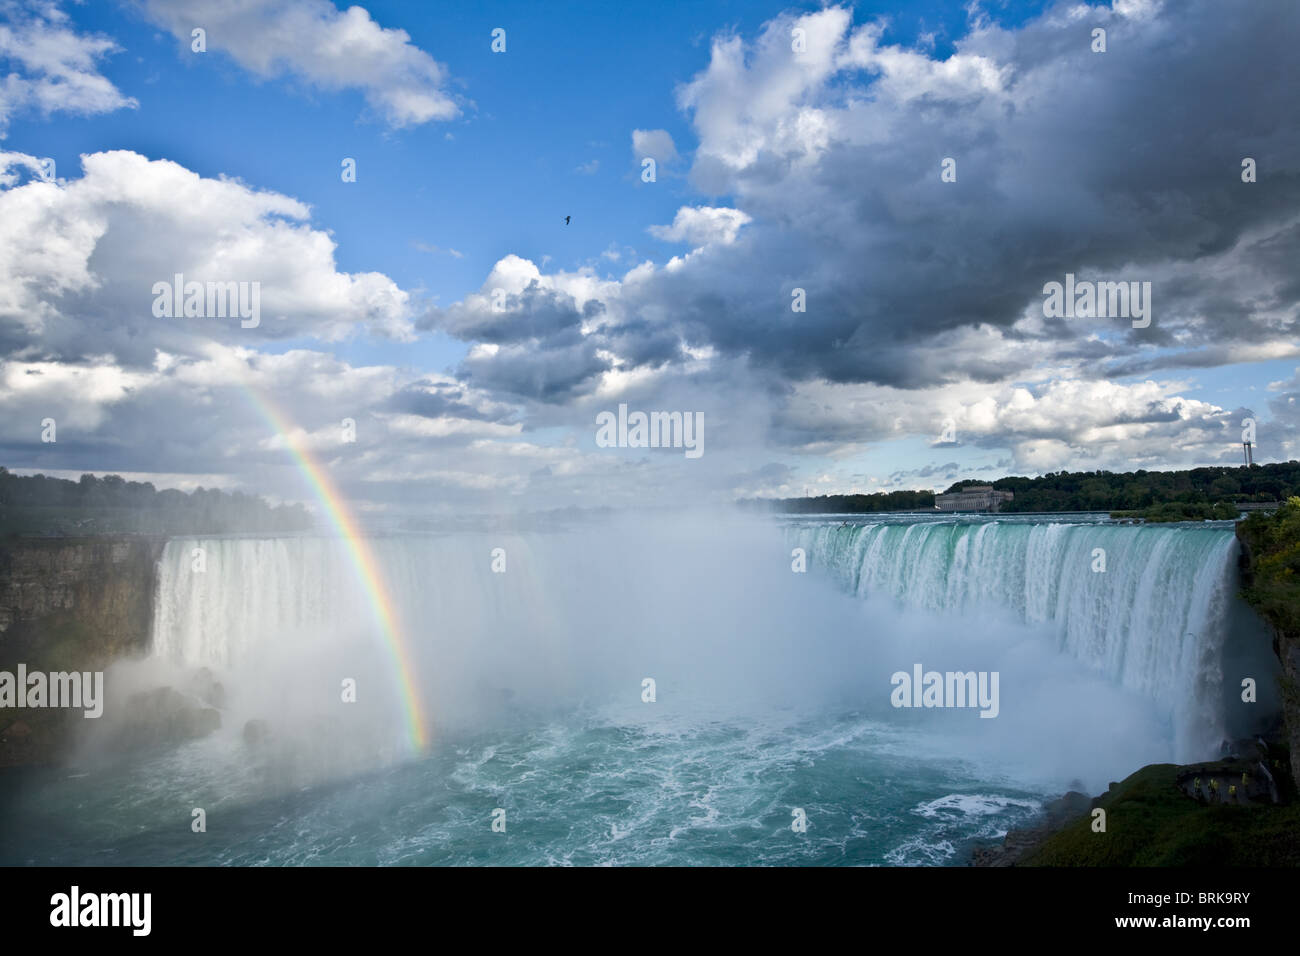 Rainbow and spectacular clouds over Horseshoe Falls, Niagara Falls, Ontario, Canada - Stock Image